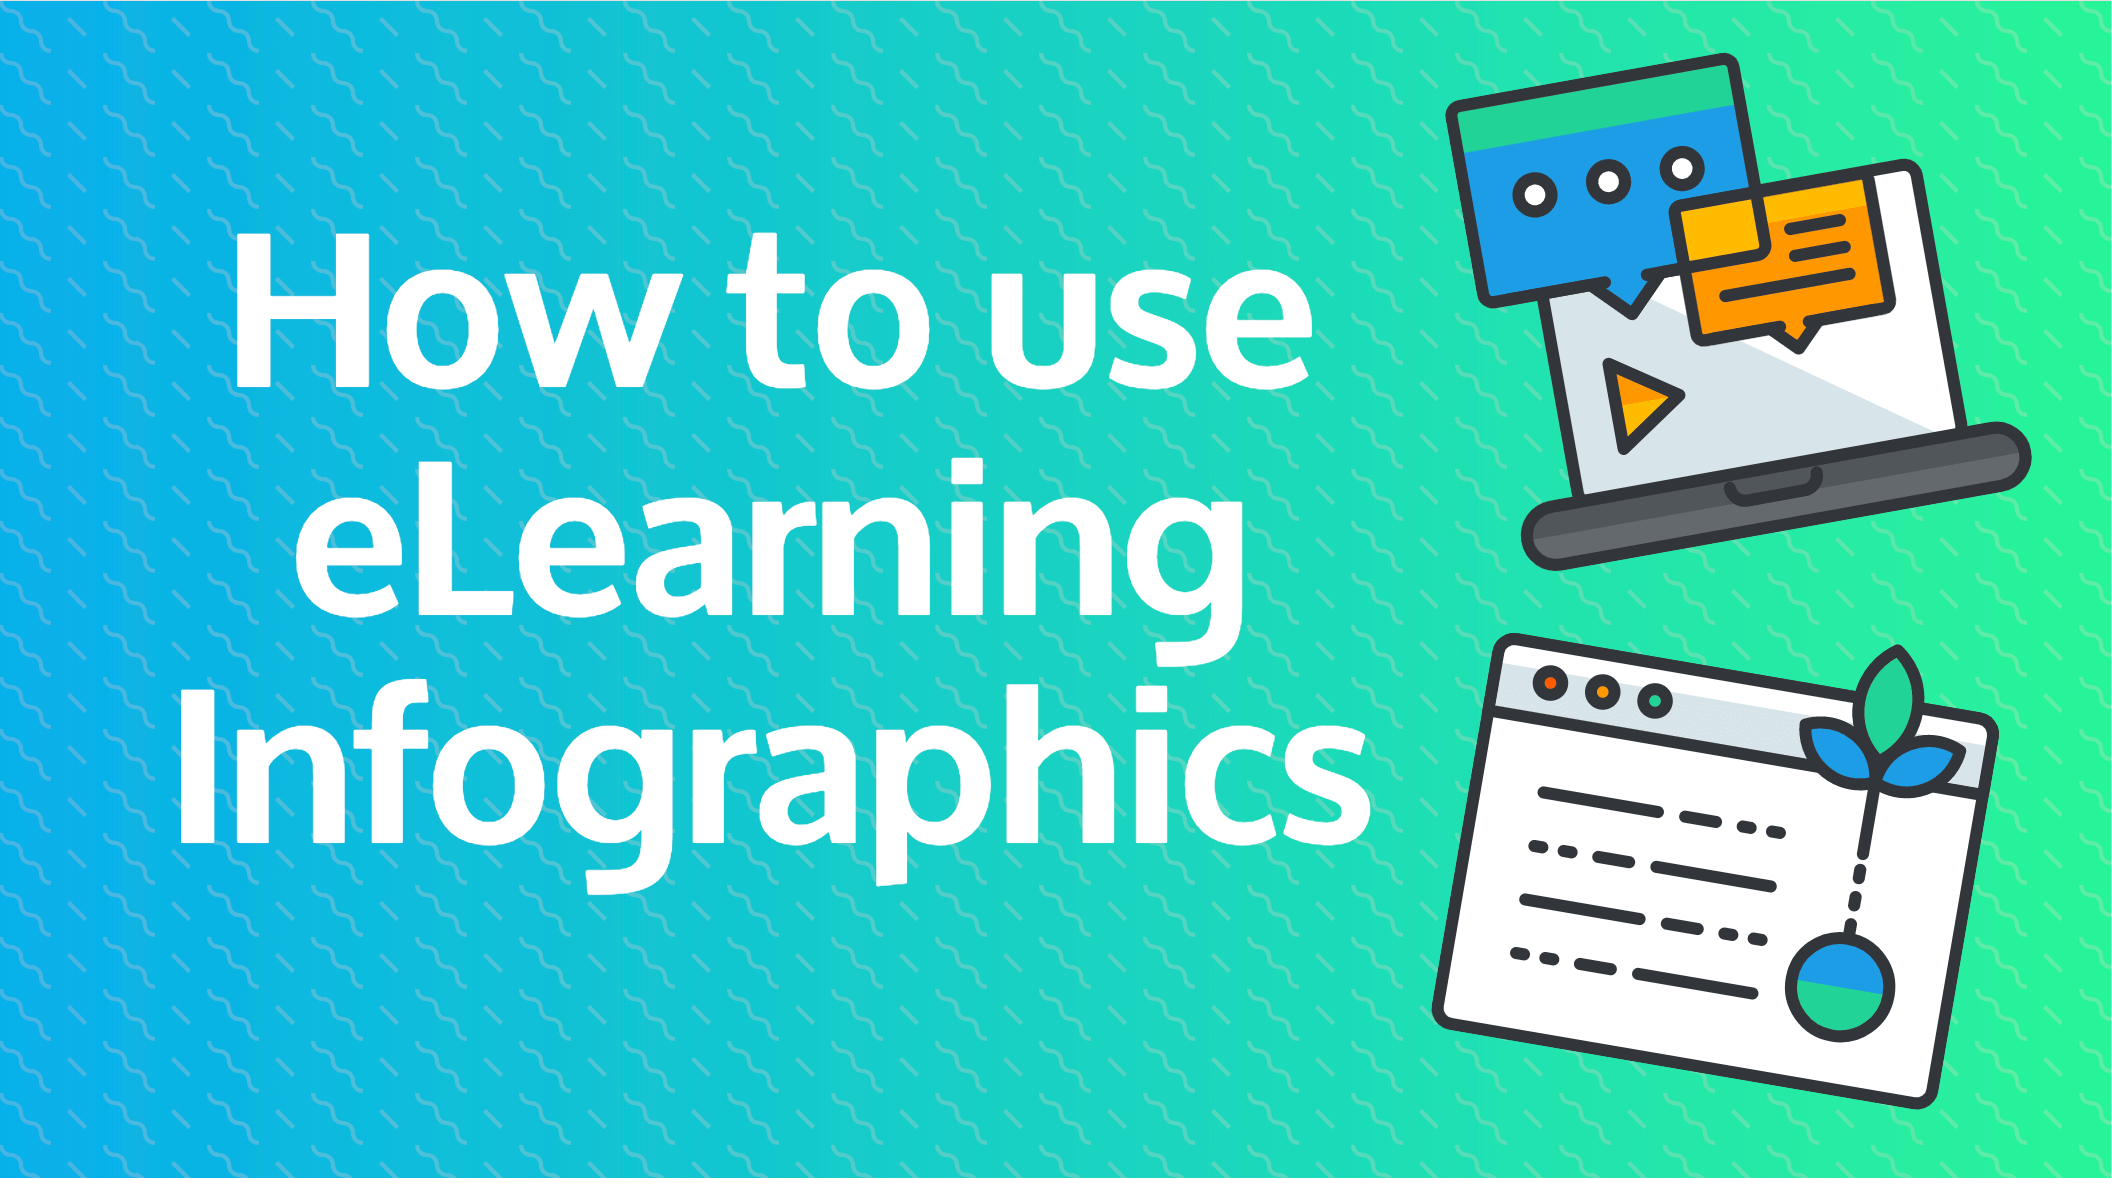 How-to-use-eLearning-infographics